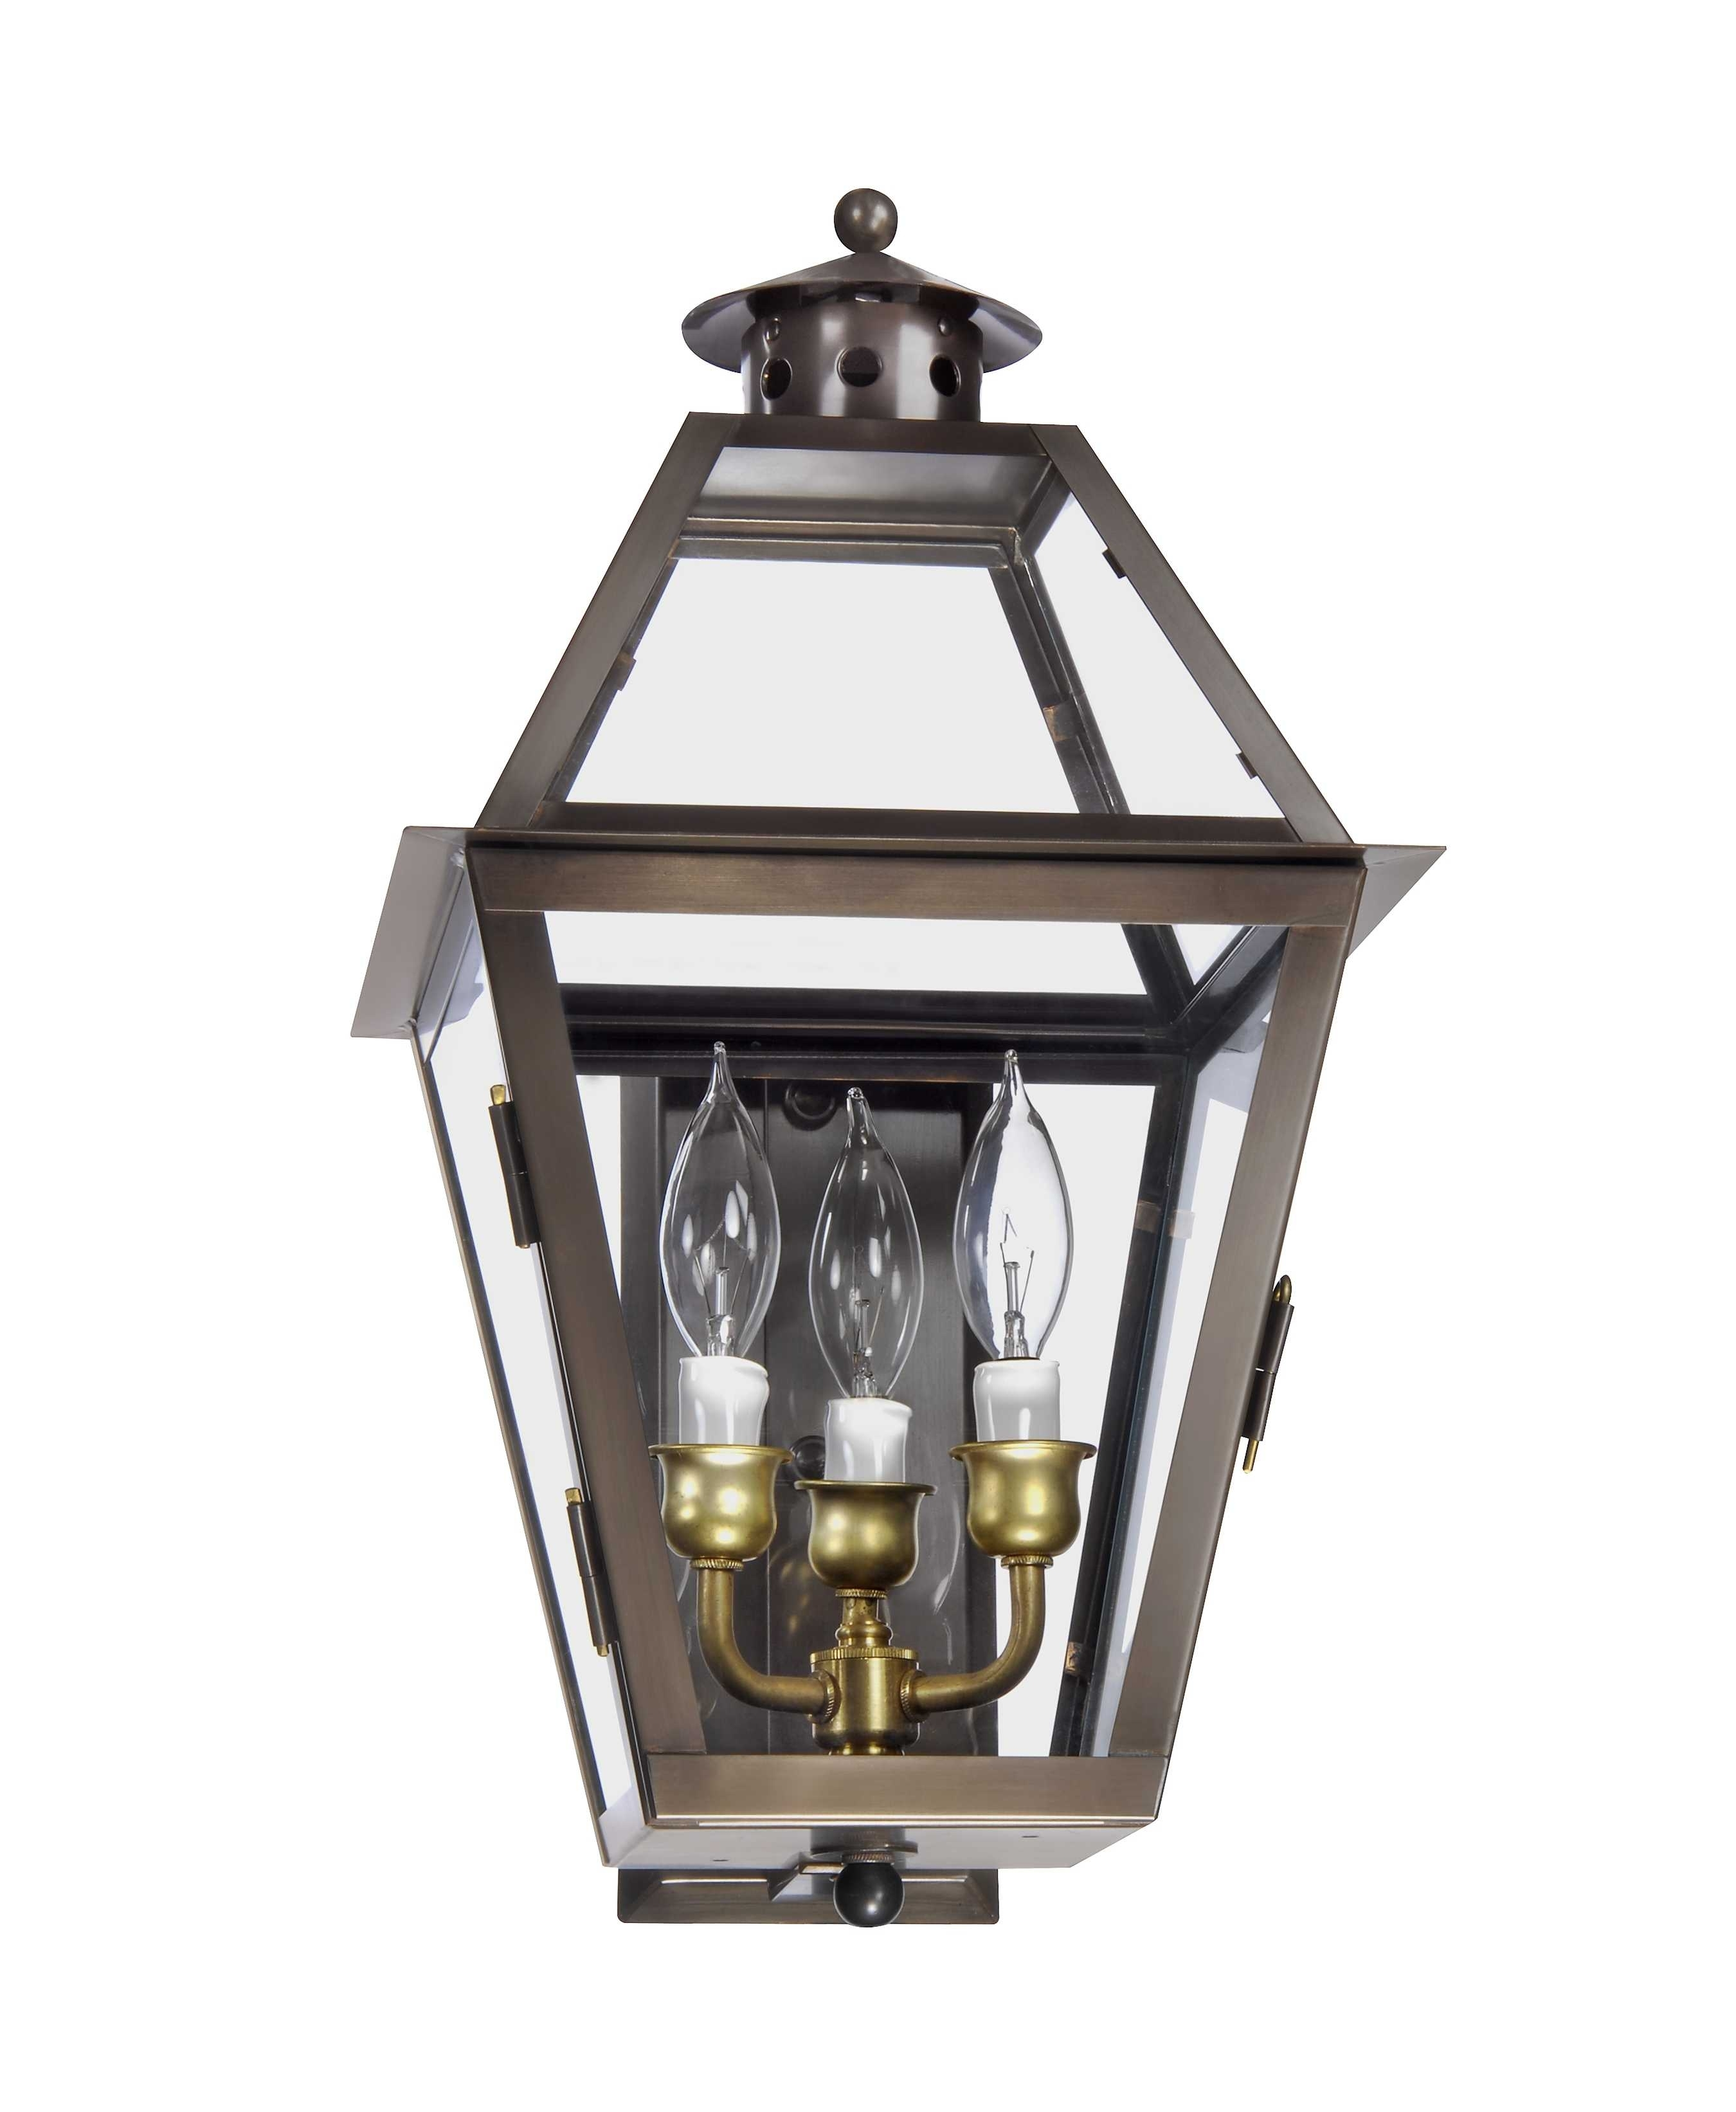 Outdoor Lanterns | Copper Exterior Lighting - Lantern & Scroll with regard to Modern Outdoor Lanterns (Image 17 of 20)